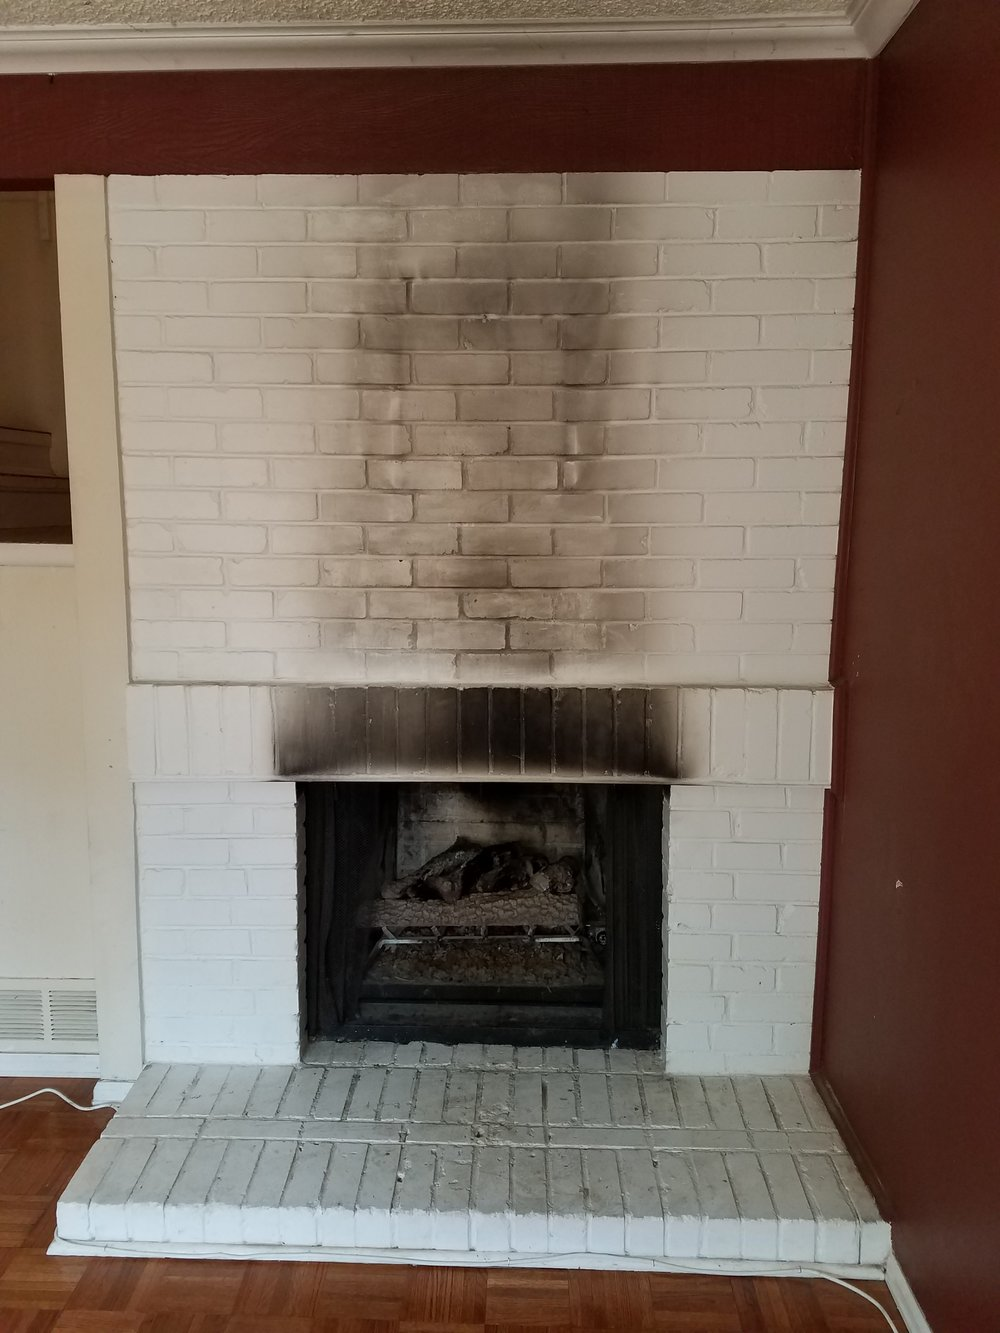 When a wood burning fireplace is converted to gas the damper must be blocked open or removed. Otherwise it creates both a fire and carbon monoxide hazard.